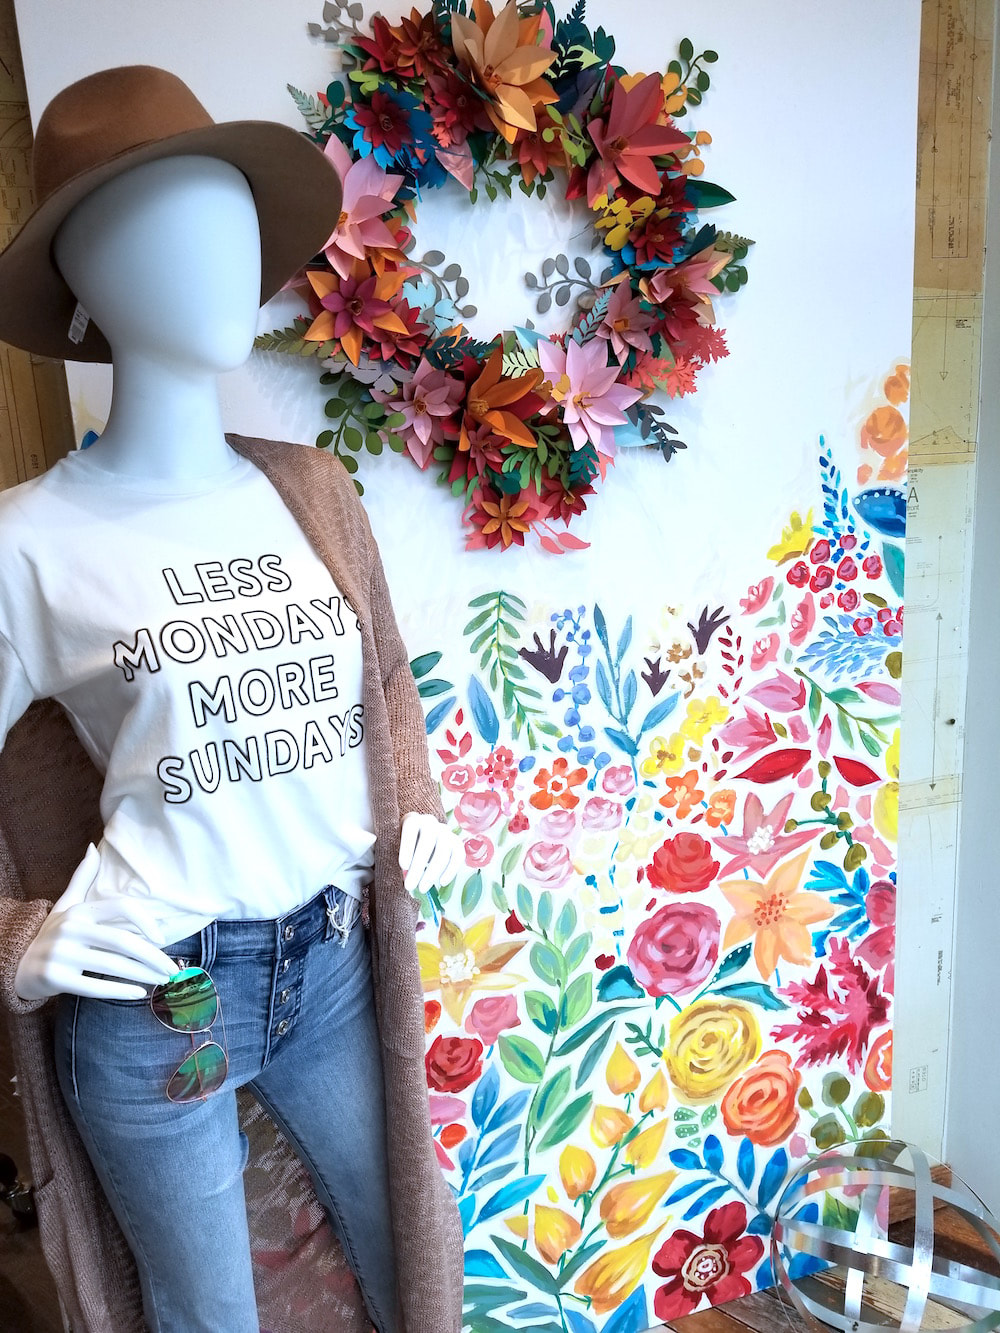 Spring Window Display featuring cut paper florals